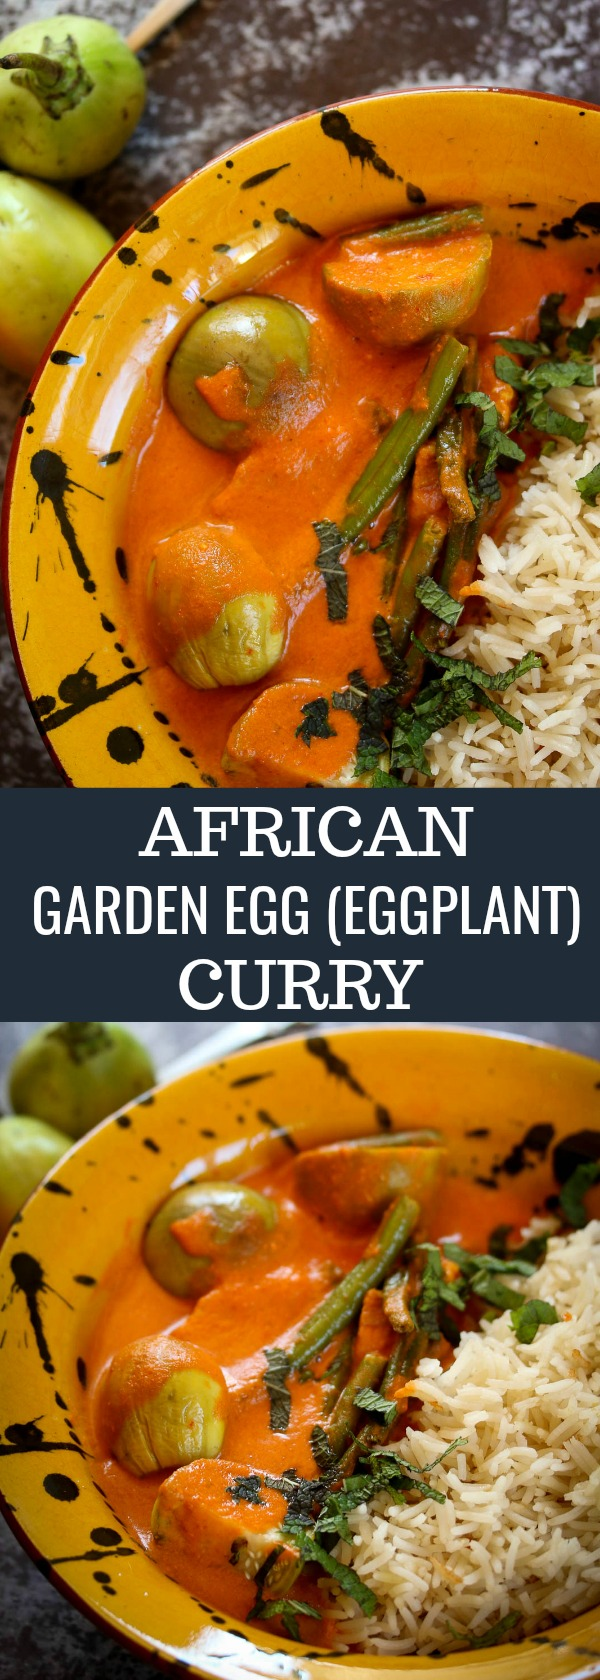 A Vegan and Gluten-Free African Garden Egg (Eggplant) is Simmered in a Creamy Coconut Sauce for a Quick and Healthy Weekday Dinner